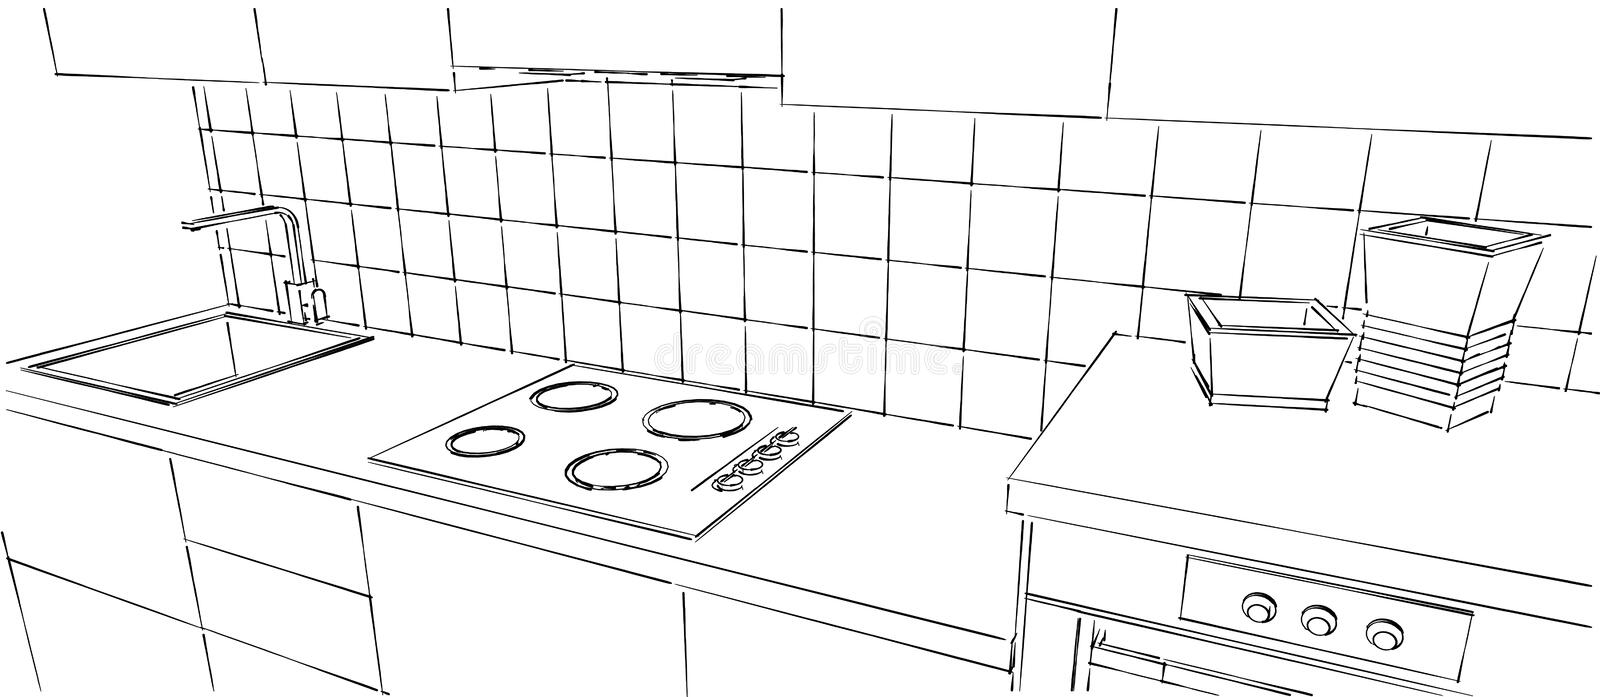 Contemporary Kitchen Counter Close Up Black And White Sketch Drawing Stock Illustration